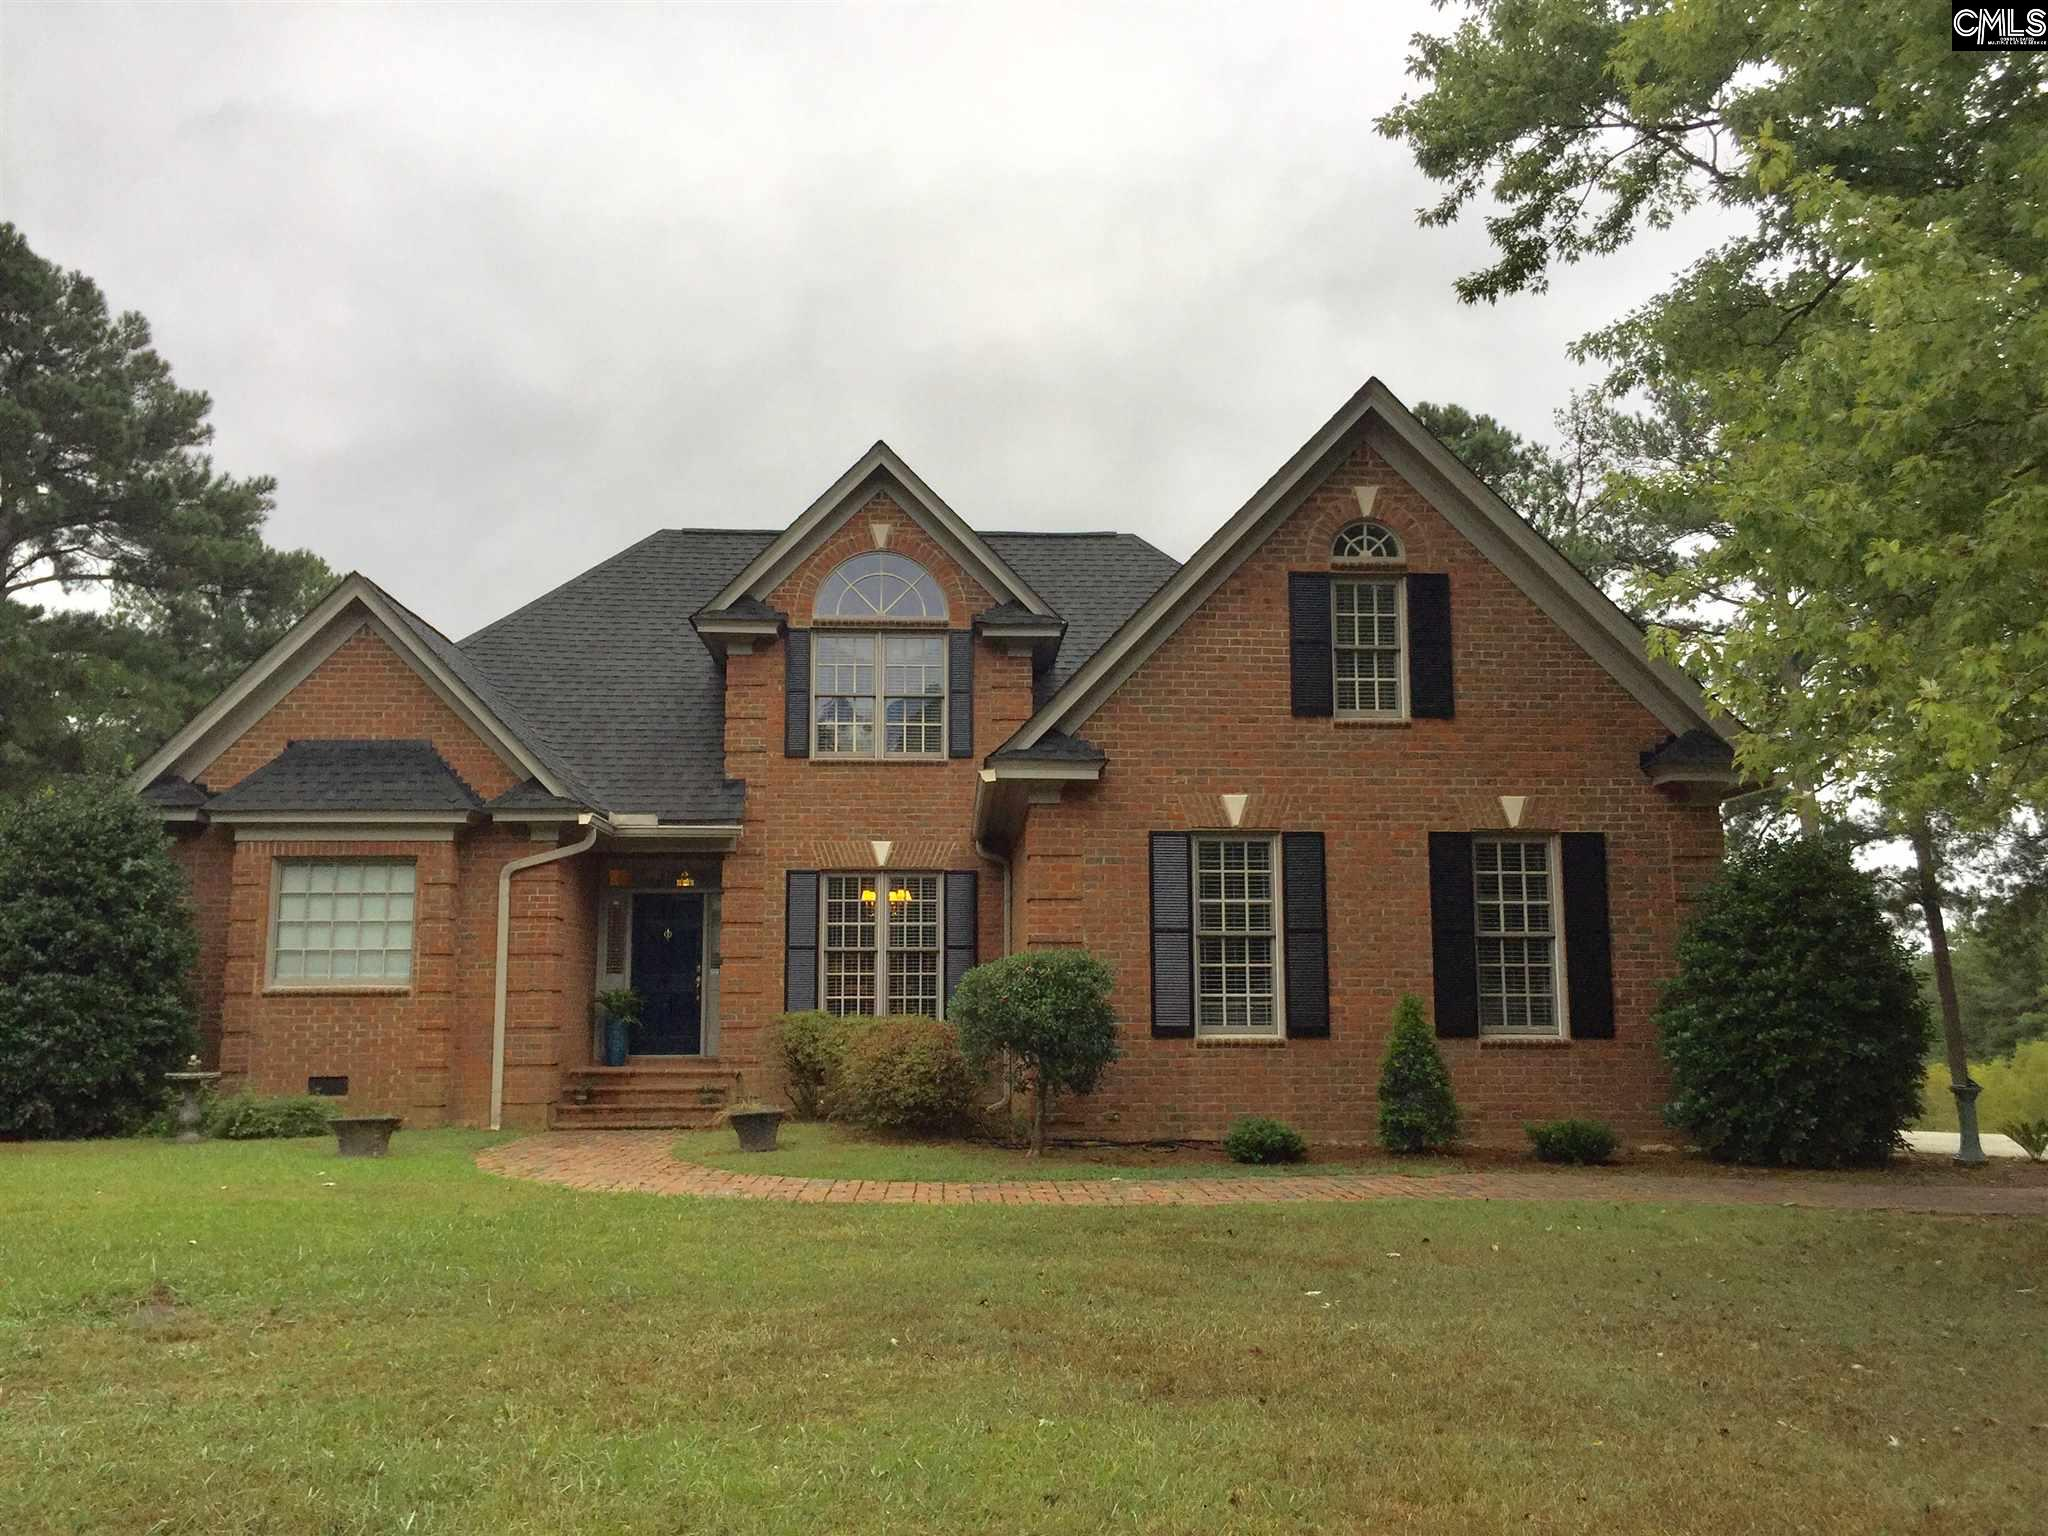 133 Kingswood 1 Winnsboro, SC 29180